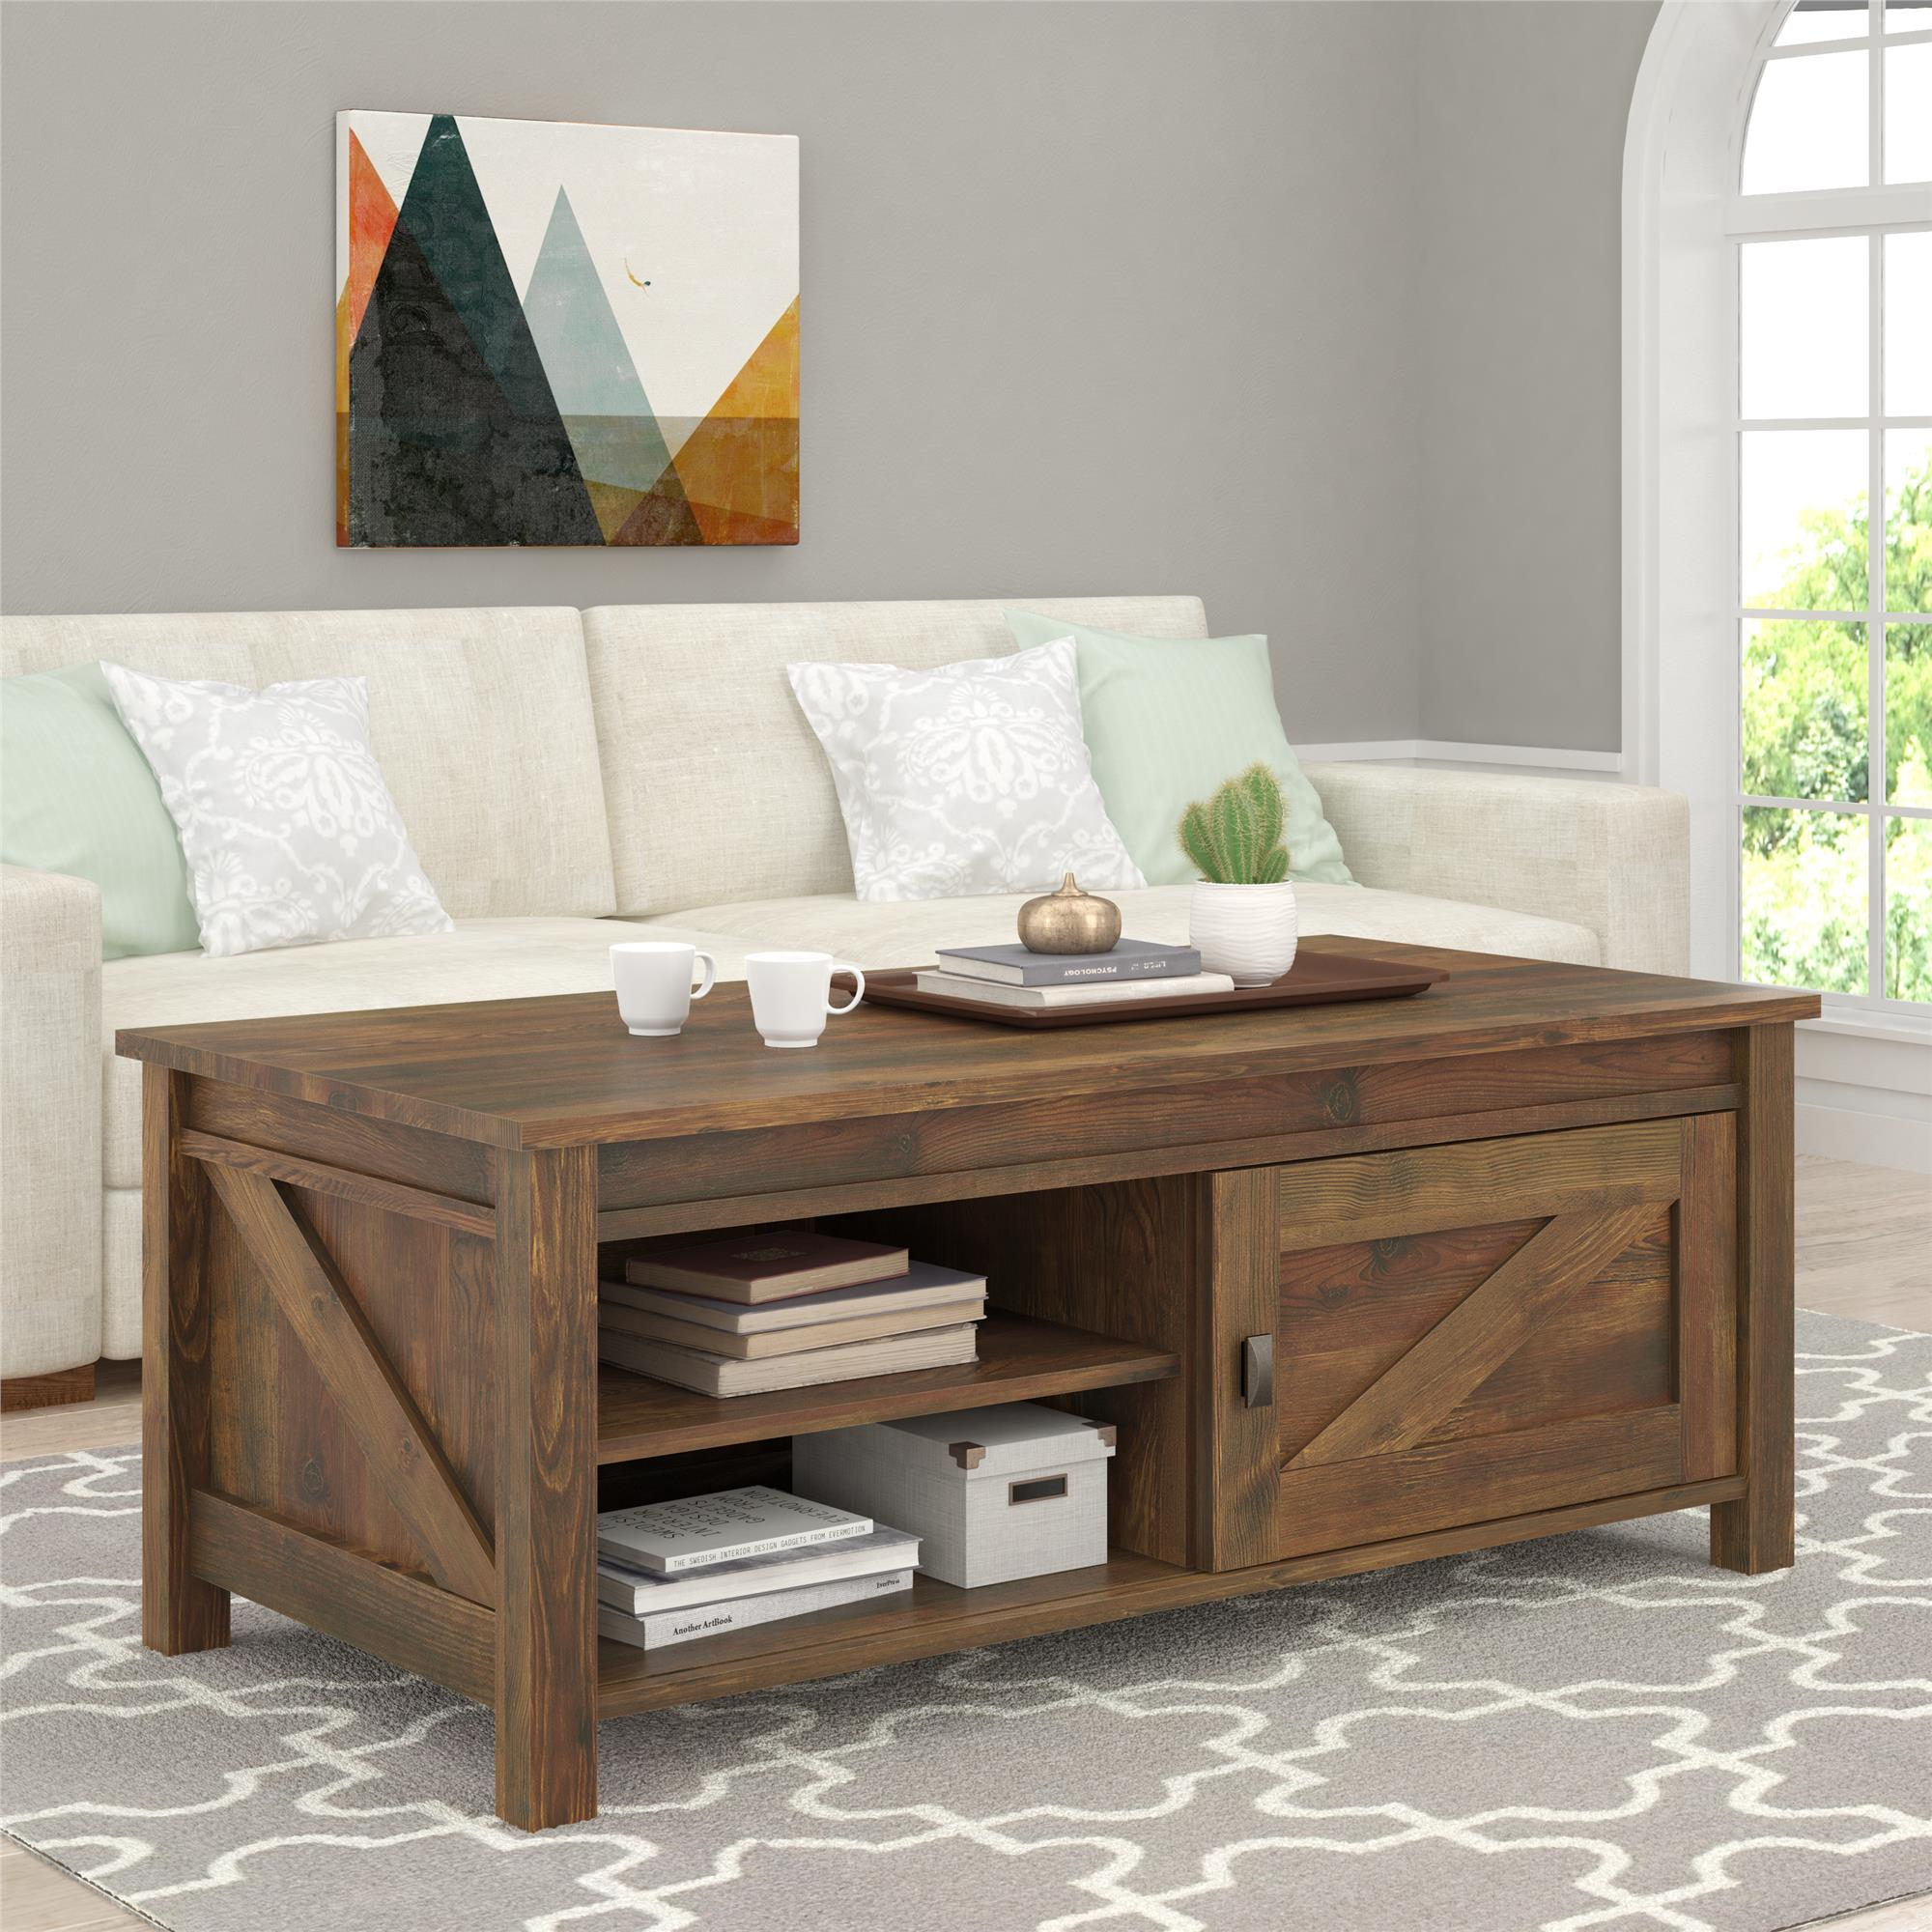 ameriwood furniture farmington coffee table rustic source accent with barn door pottery decor painted side tables living room white and black unusual bedside lamps ashley leather